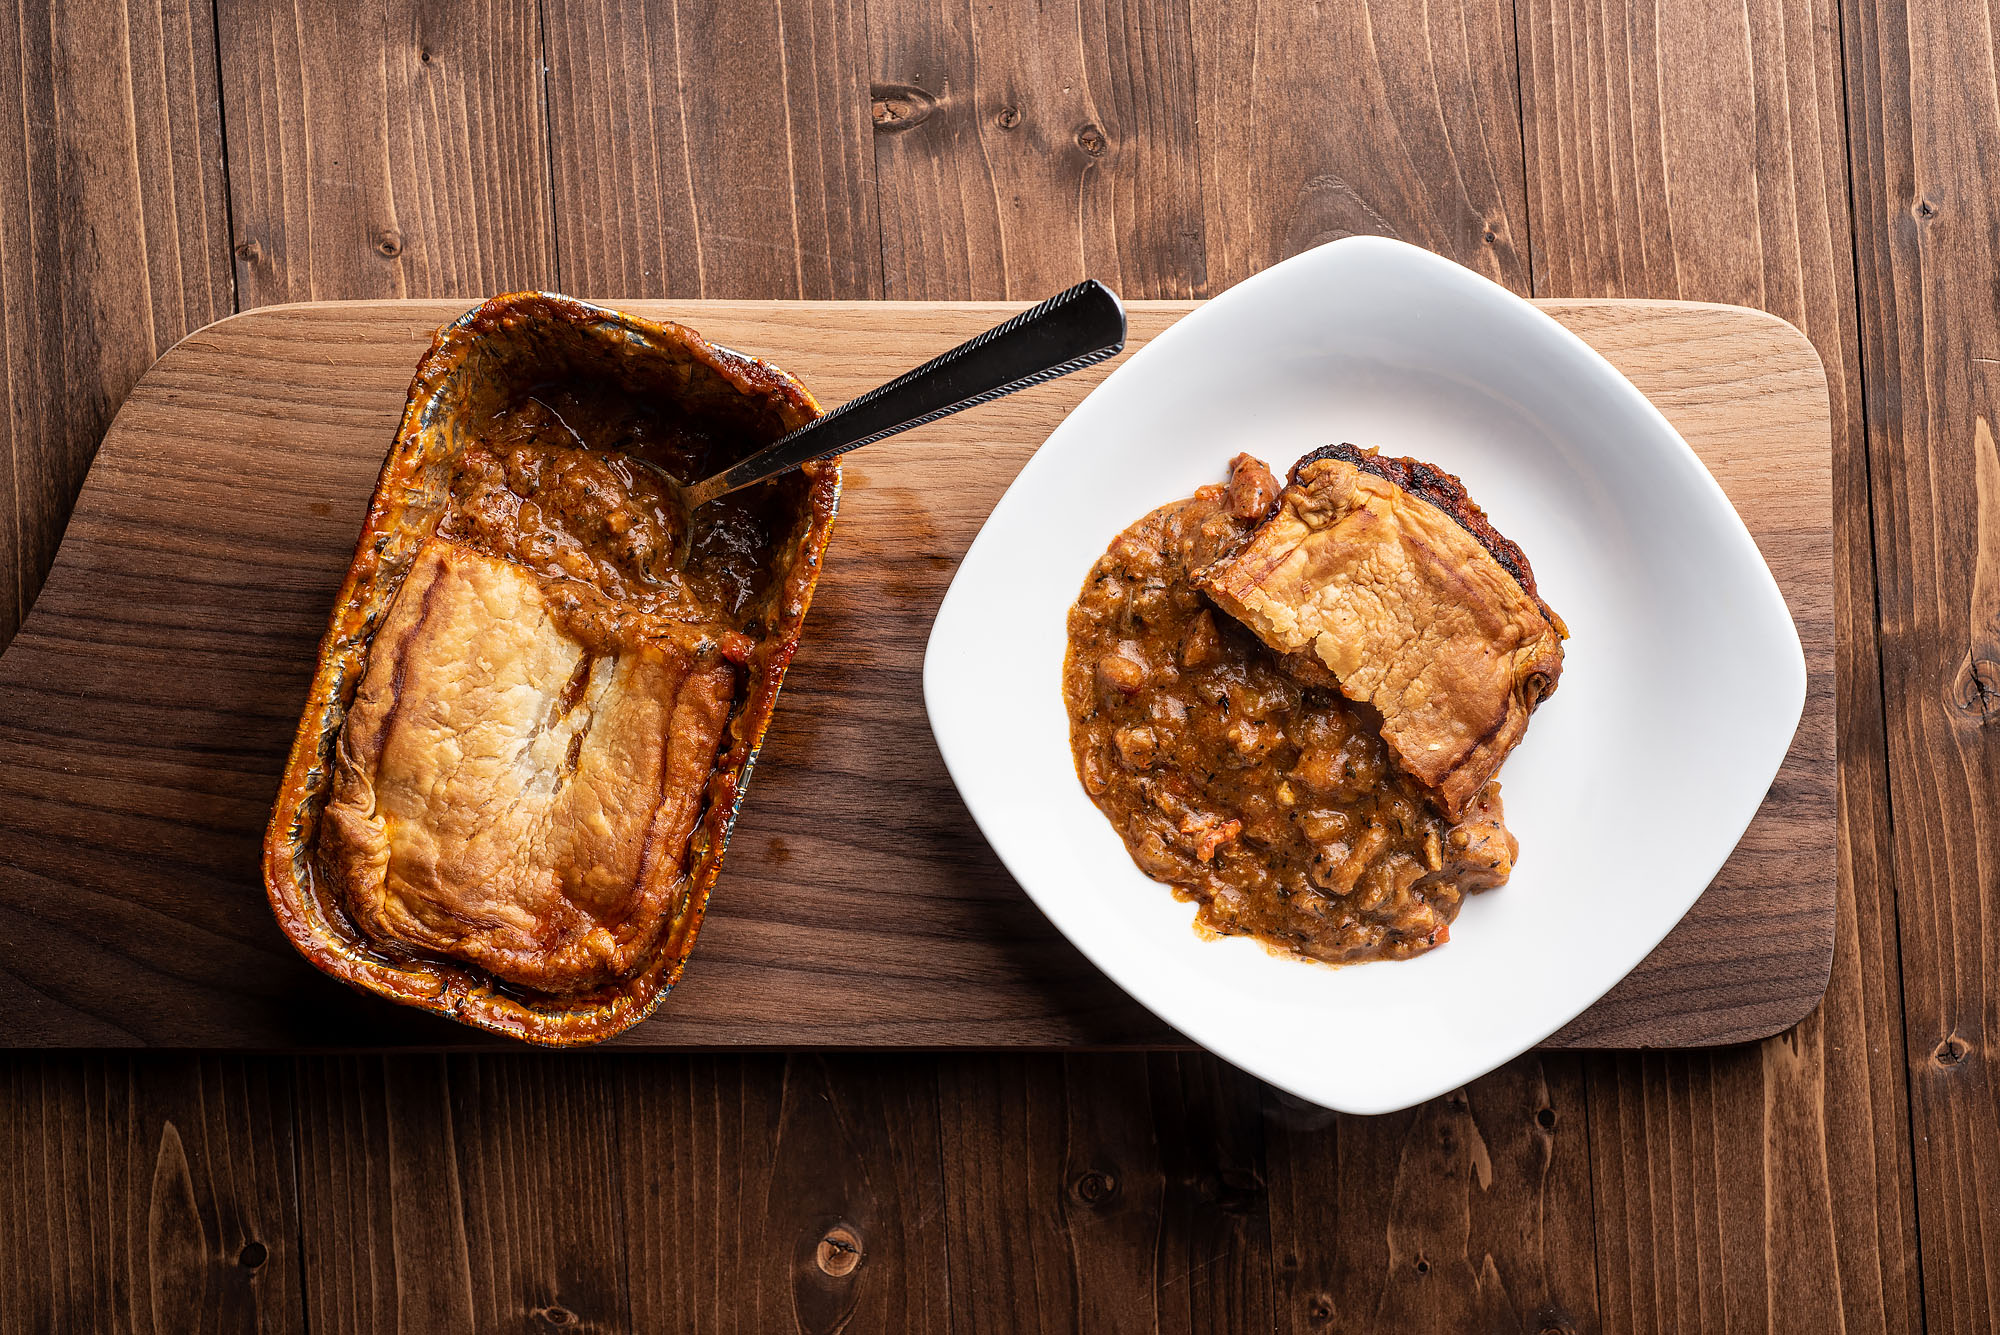 Gumbo pot pie from Bleu Kitchen in Los Angeles